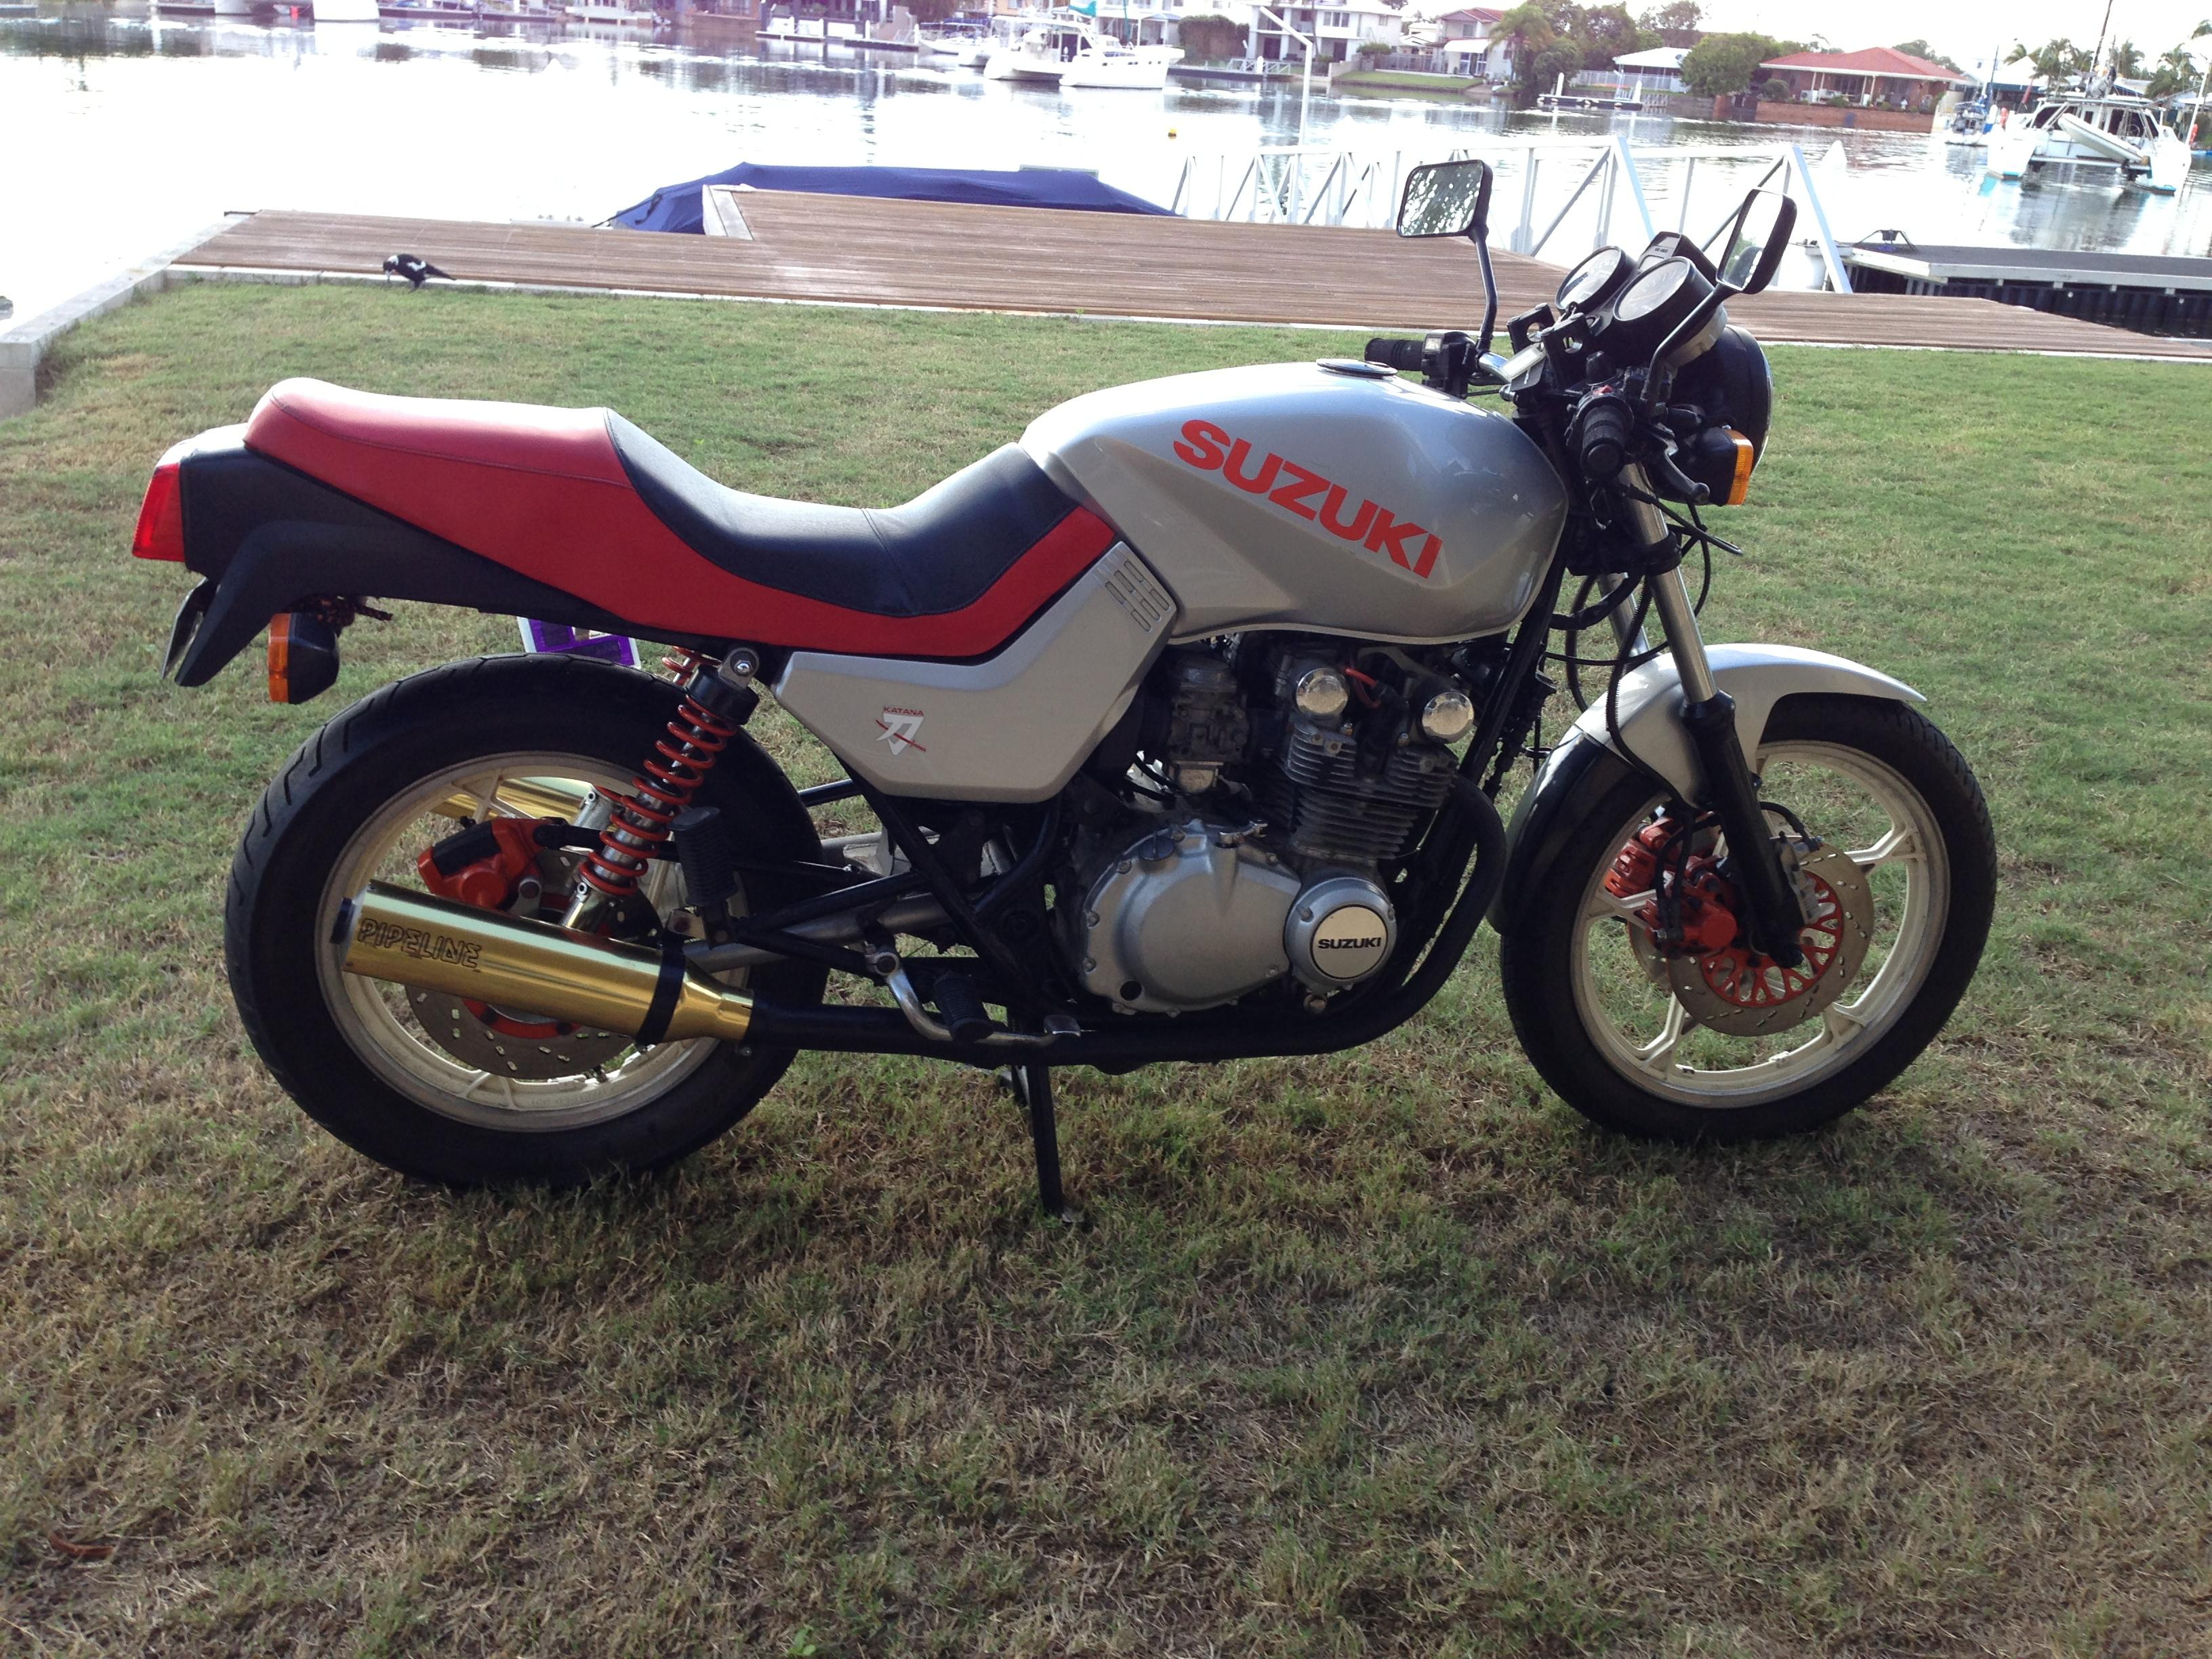 1982 Suzuki Gs650 (katana) Road - JBW5020933 - JUST BIKES